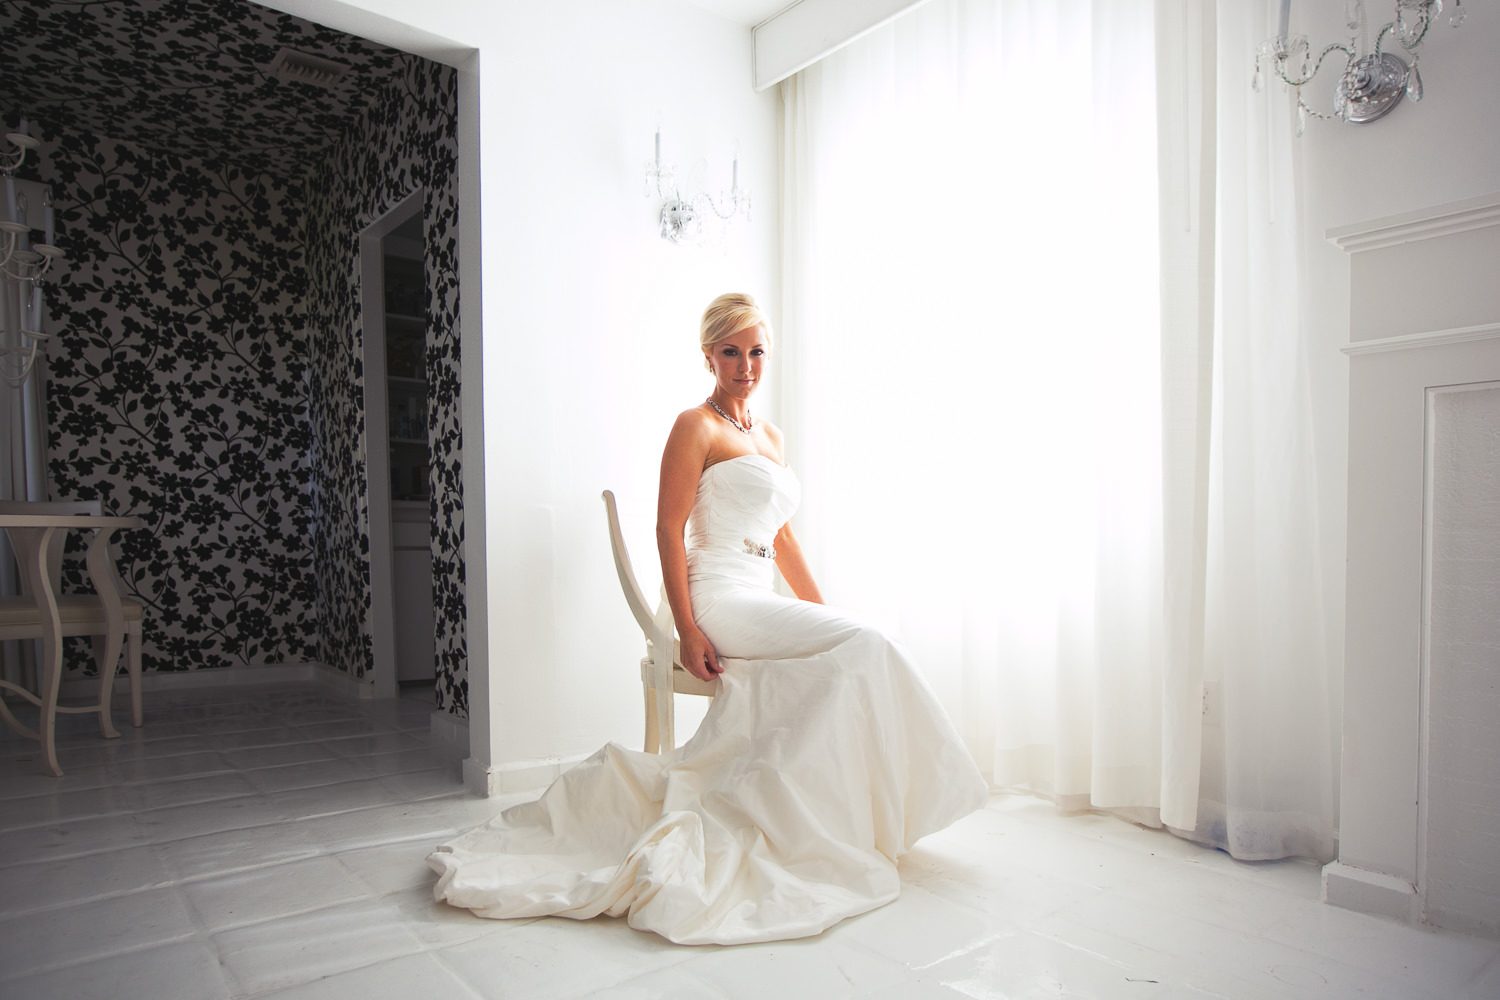 Avalon Palm Springs Photographer - Stunning bride in wedding dress